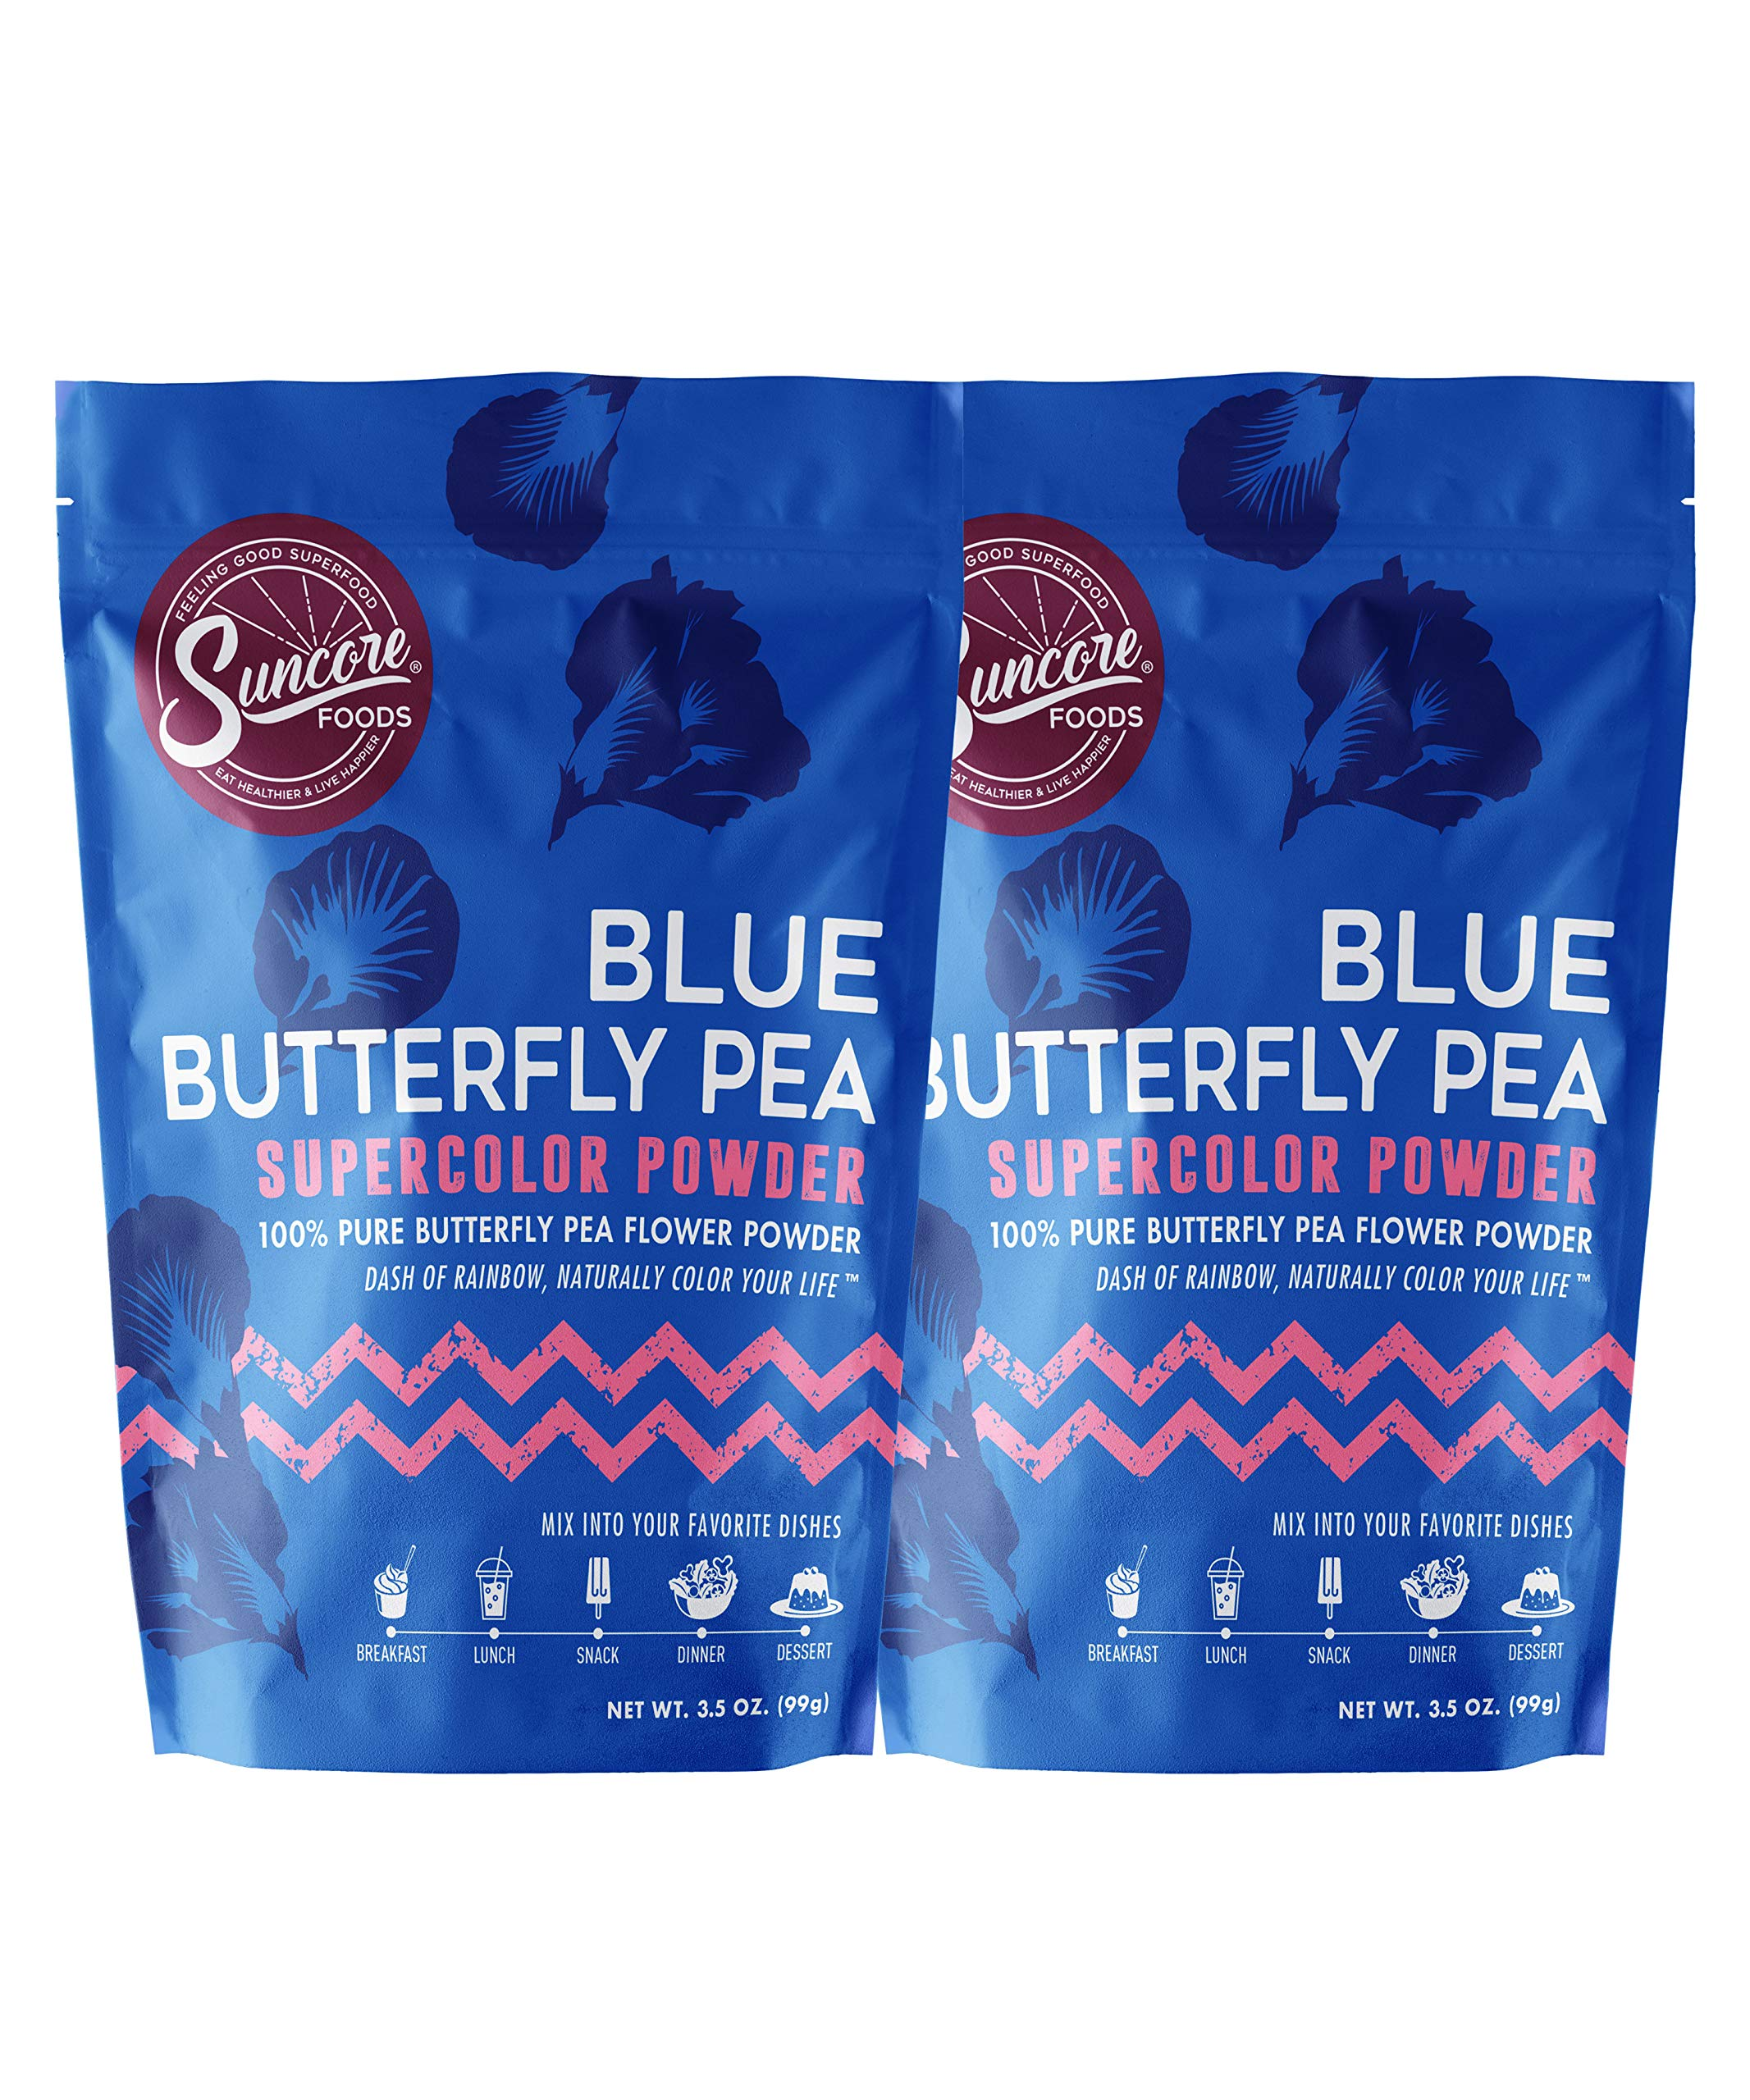 Suncore Foods - 100% Pure Butterfly Pea Flower Natural Supercolor Powder, 3.5oz each, 7oz Total (2 Pack)